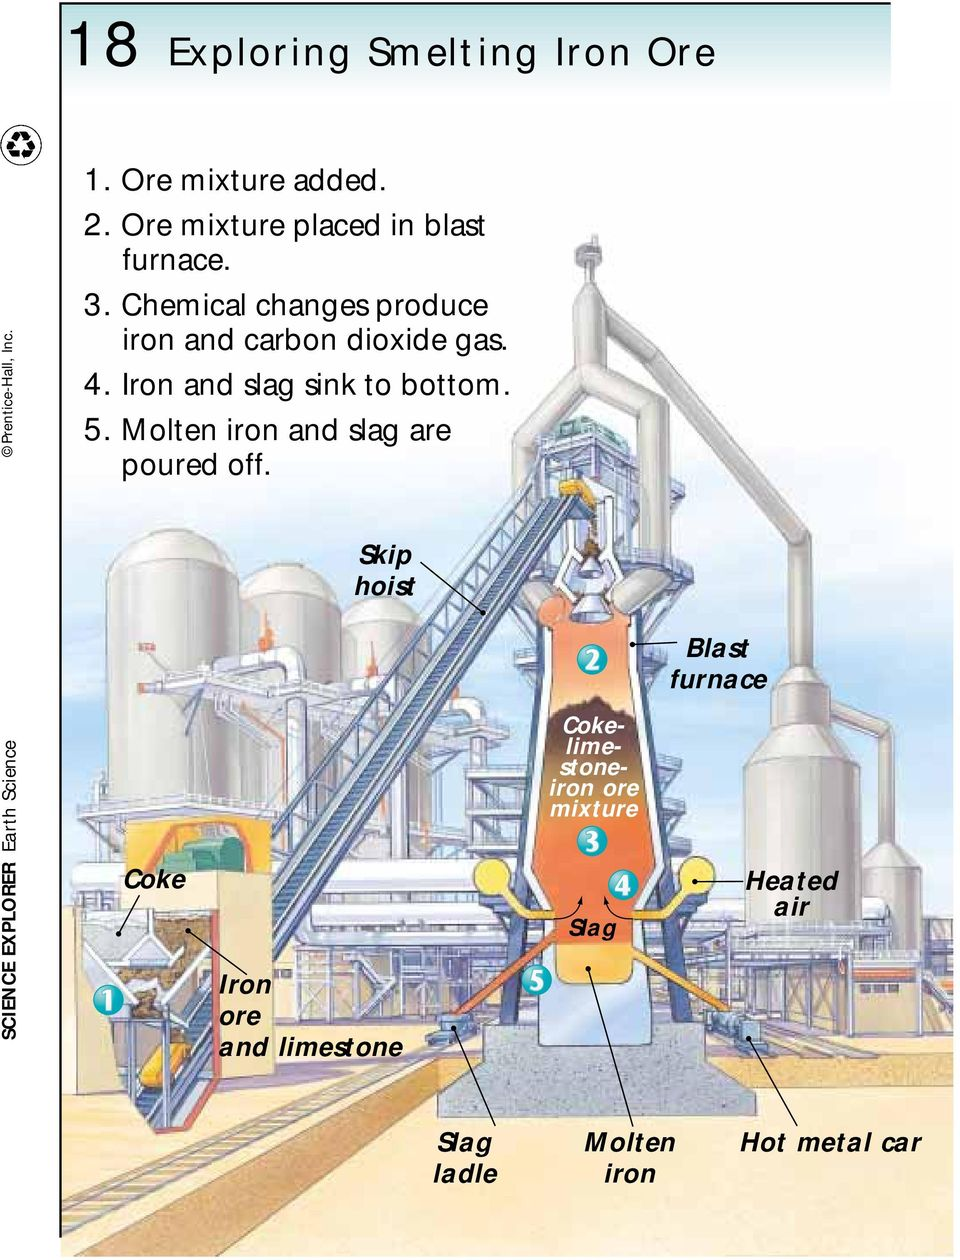 Chemical changes produce iron and carbon dioxide gas. 4. Iron and slag sink to bottom. 5.